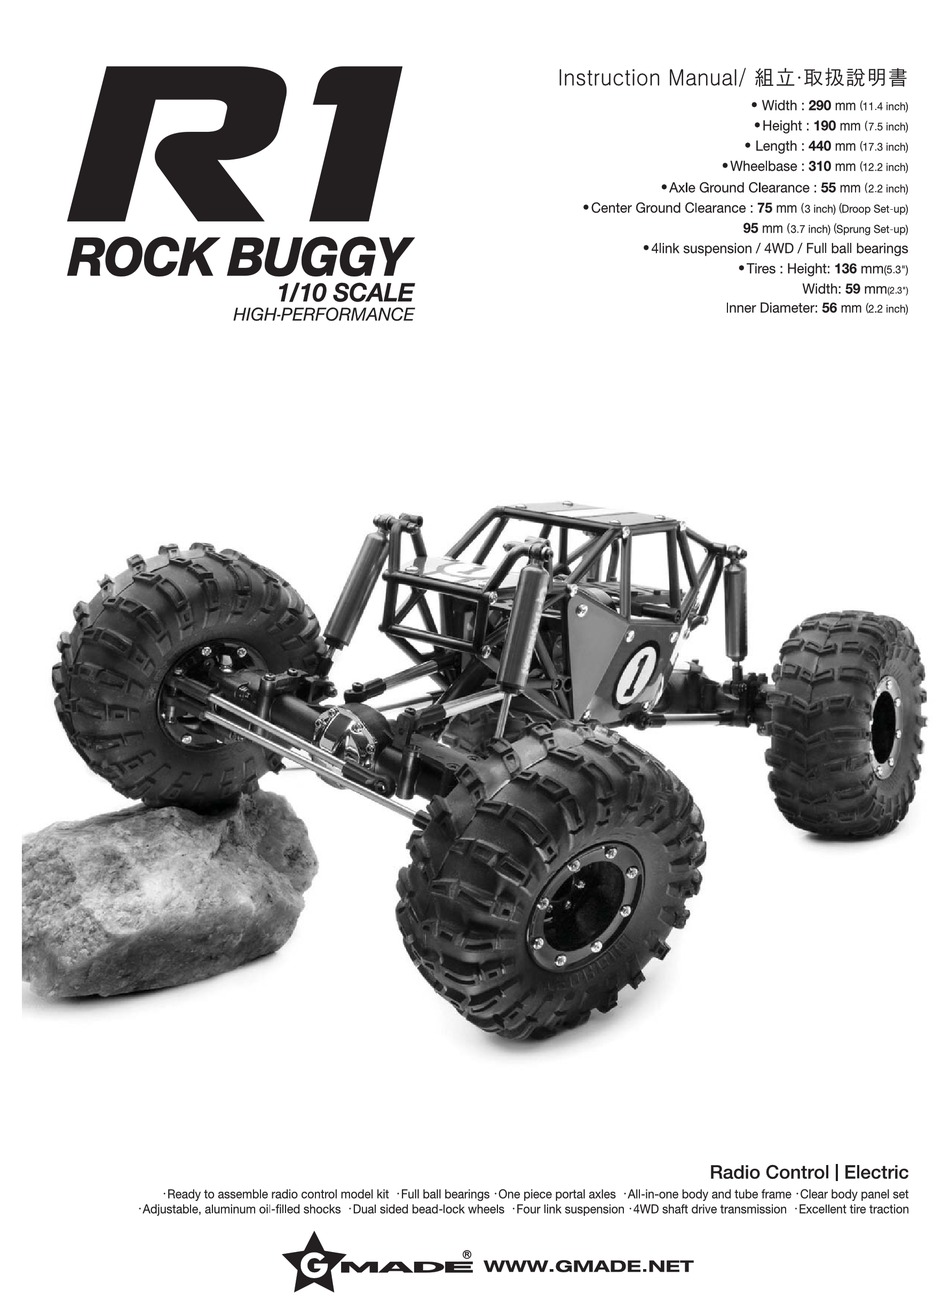 GMADE R1 ROCK BUGGY INSTRUCTION MANUAL Pdf Download